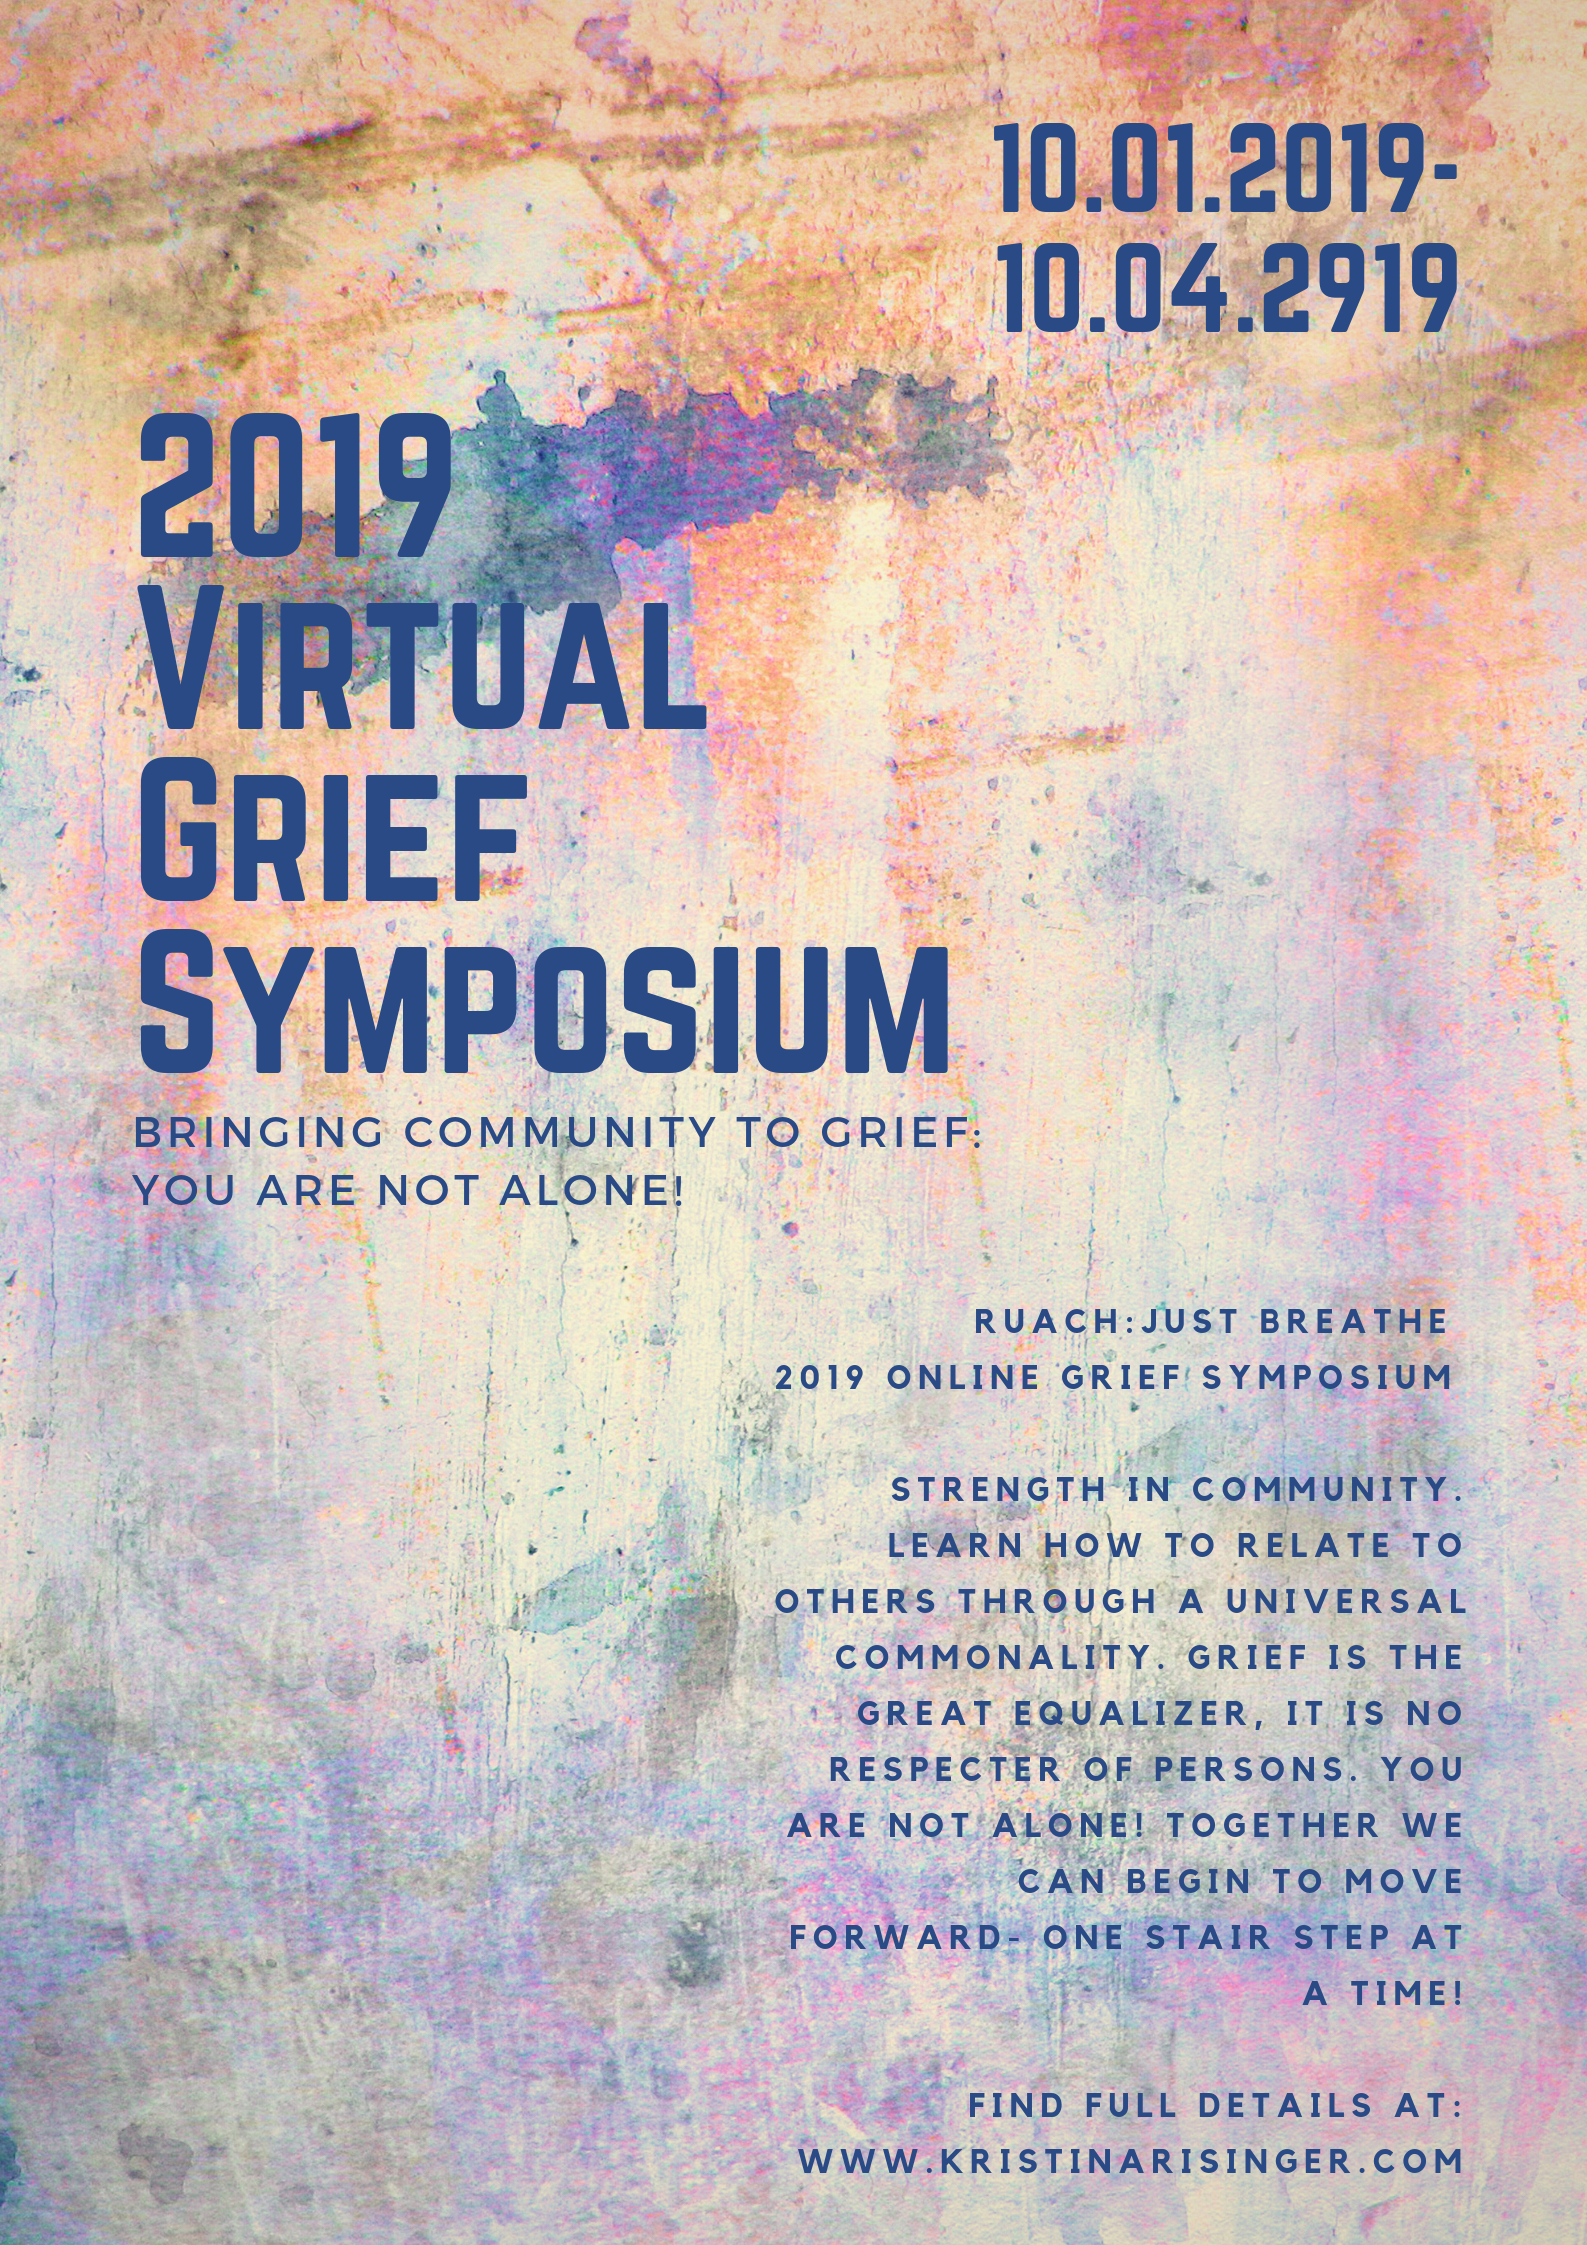 2019 Grief Symposium: Bringing Community to Your Grief Casey Bonano RD, LD, CEDRD Dallas Nutritional Counseling #grief #youarenotalone #griefsymposium #dallasnutritionalcounseling #mentalhealth #mentalhealthmatters #caseybonanord #eatingdisorder #eatingdisordertreatment